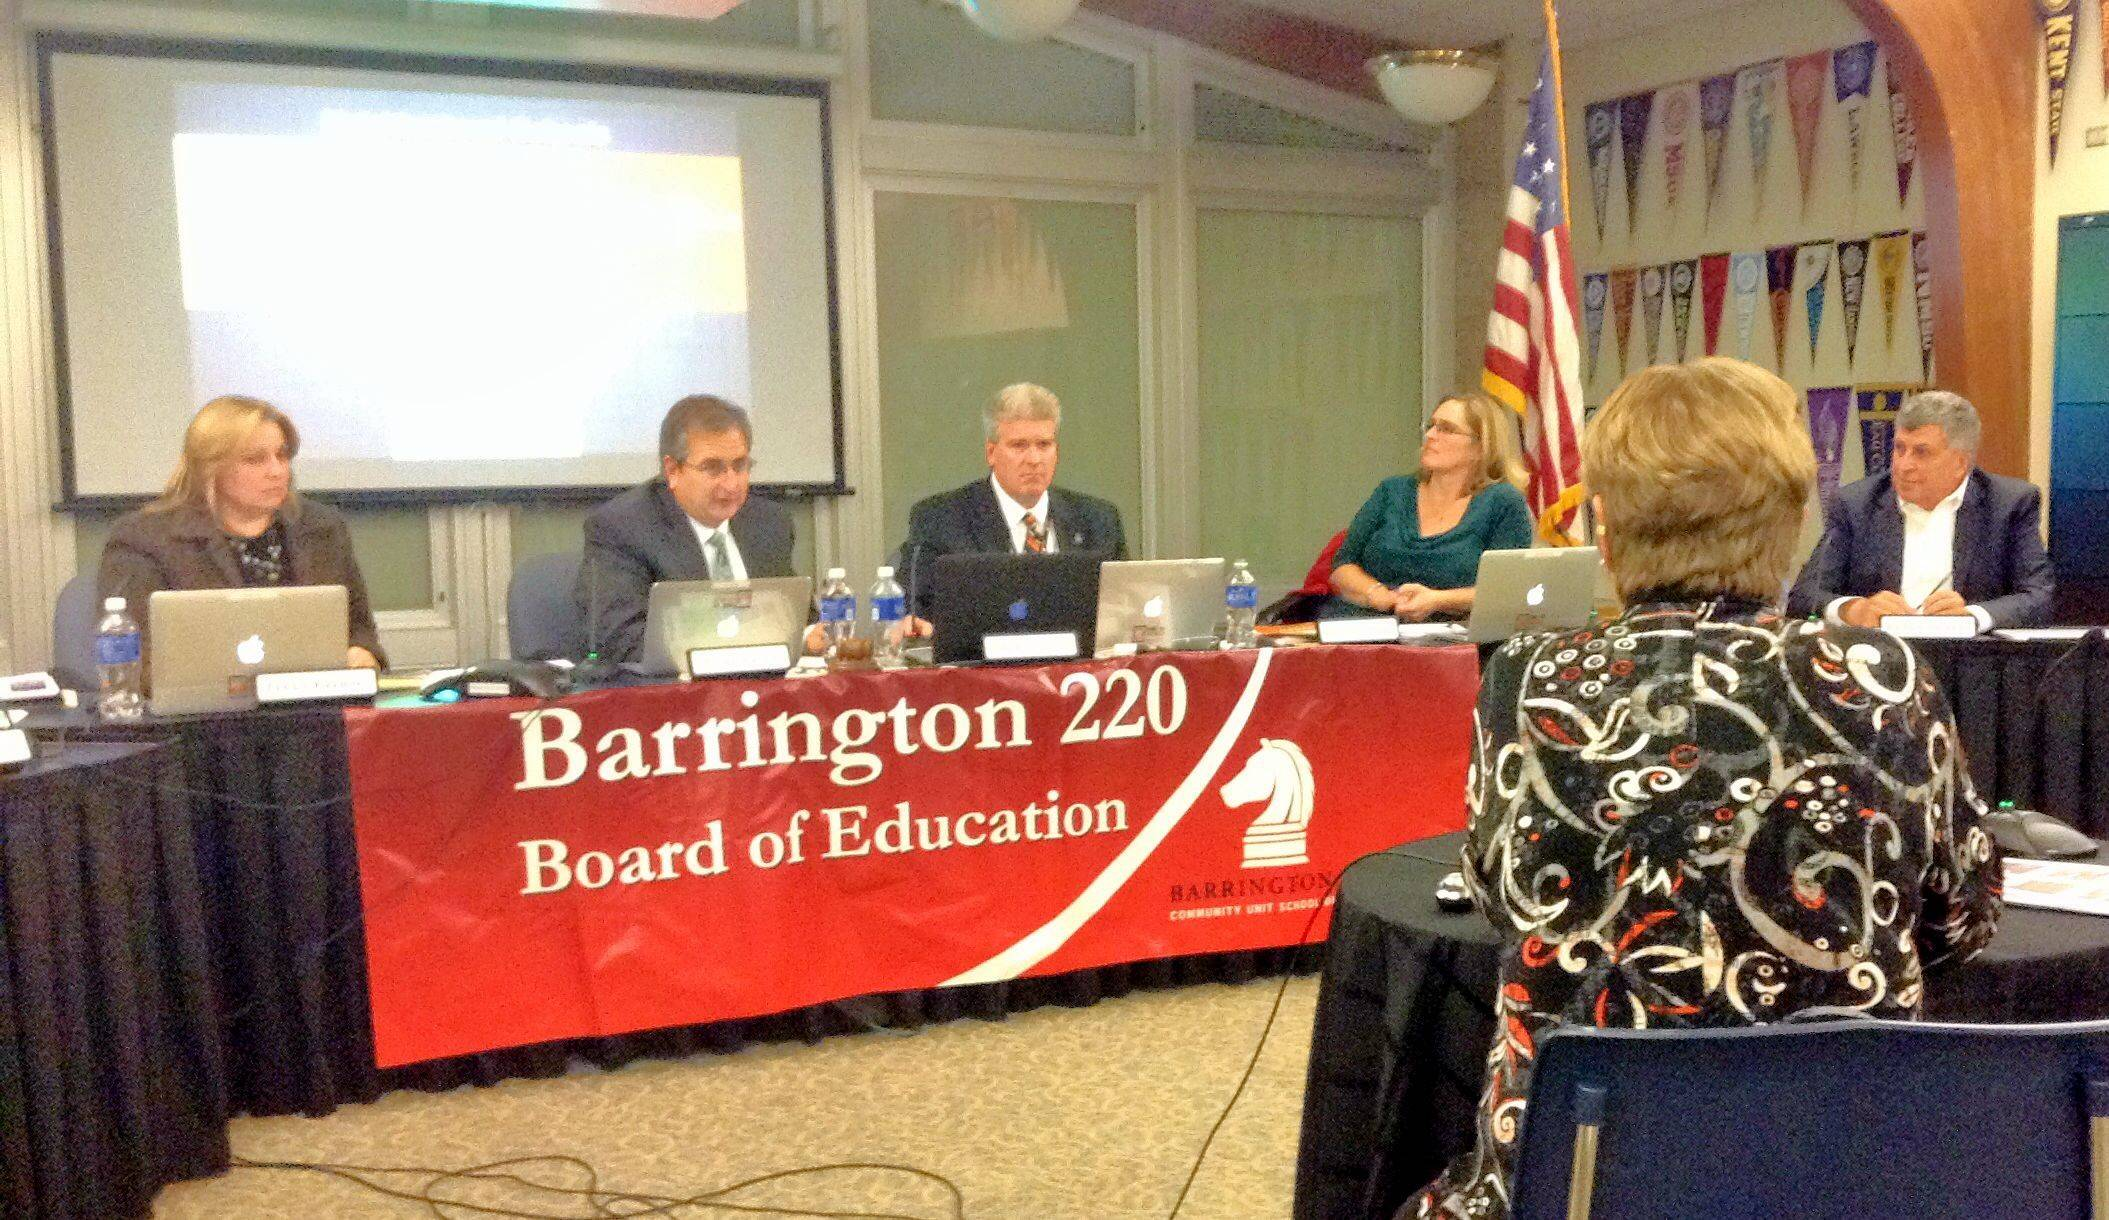 Members of the Barrington Area Unit School District 220 Board of Education listen to a presentation from Linda Klobucher, the assistant superintendent of curriculum and instruction, on the changes to the district's tuition-based full-day kindergarten program.